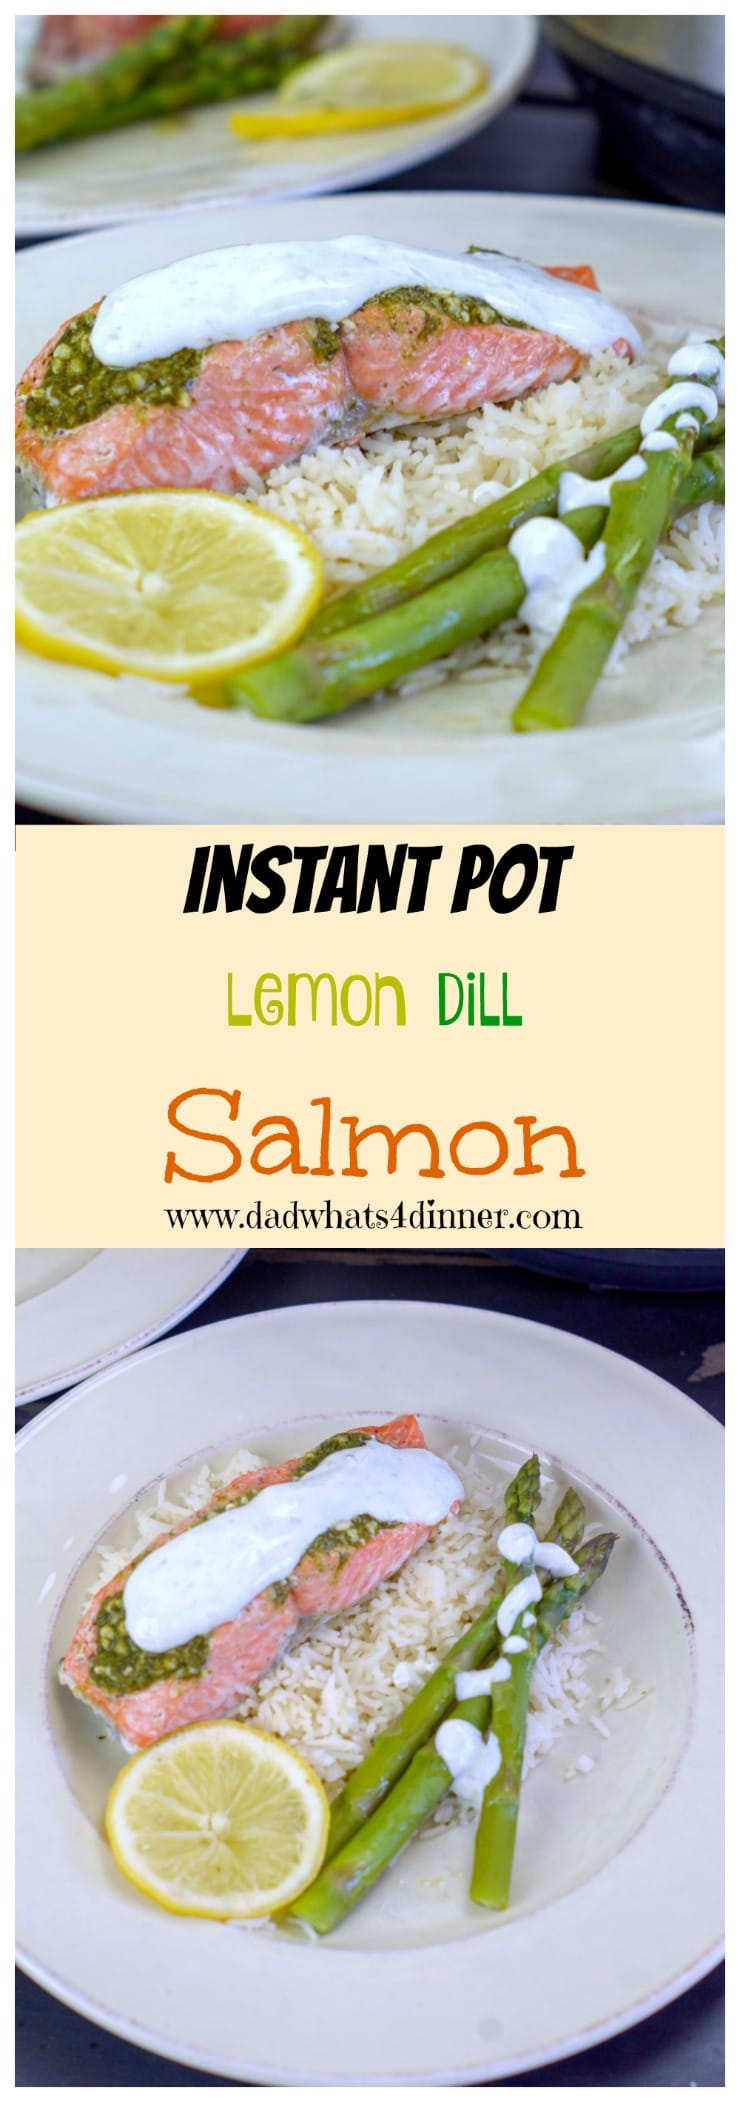 Pinterest image of Instant Pot Lemon Dill Salmon from www.dadwhats4dinner.com @MyDorot #Ad #ElevateYourPlate #InstantPot #salmon #Dill #Healthy #lowfat